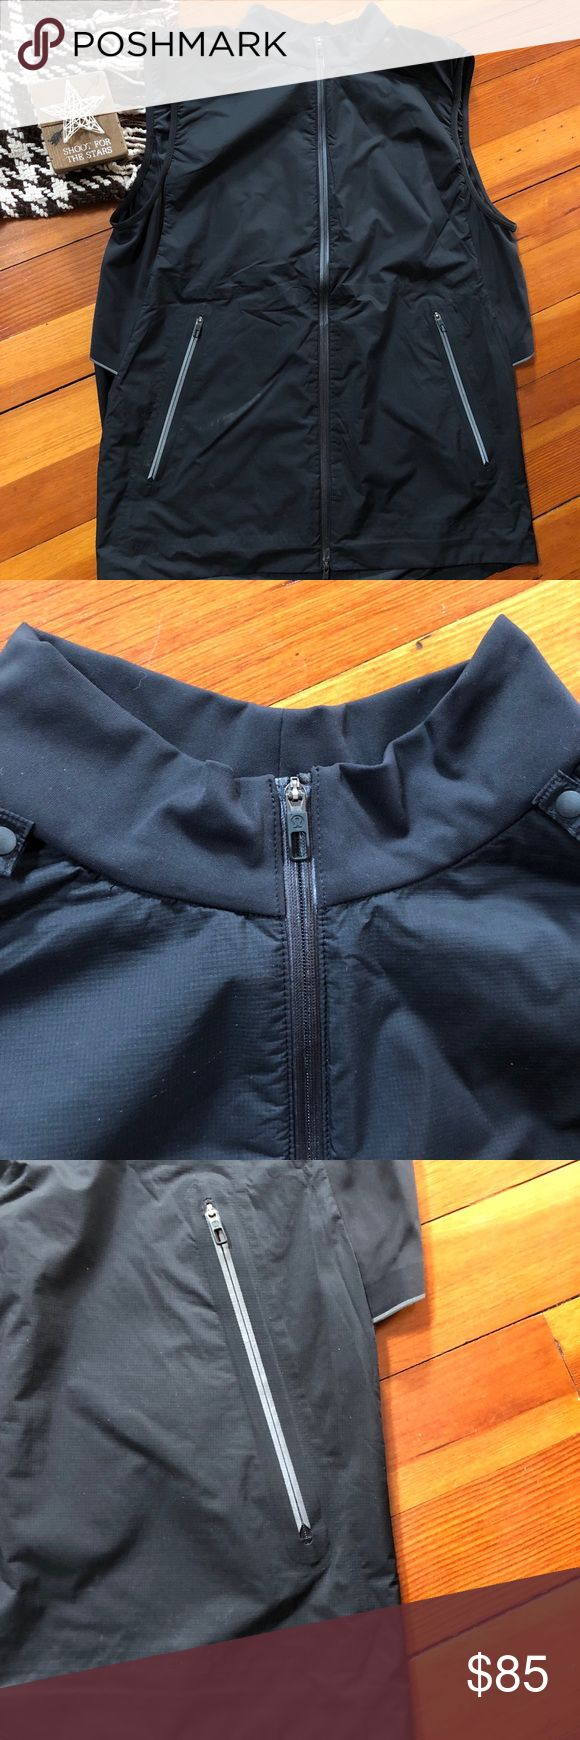 Lululemon Vest Lululemon men's black vest size large. In excellent condition. Two zippered pockets in front. Lightweight material great for working out in or causal attire. lululemon athletica Jackets & Coats Vests